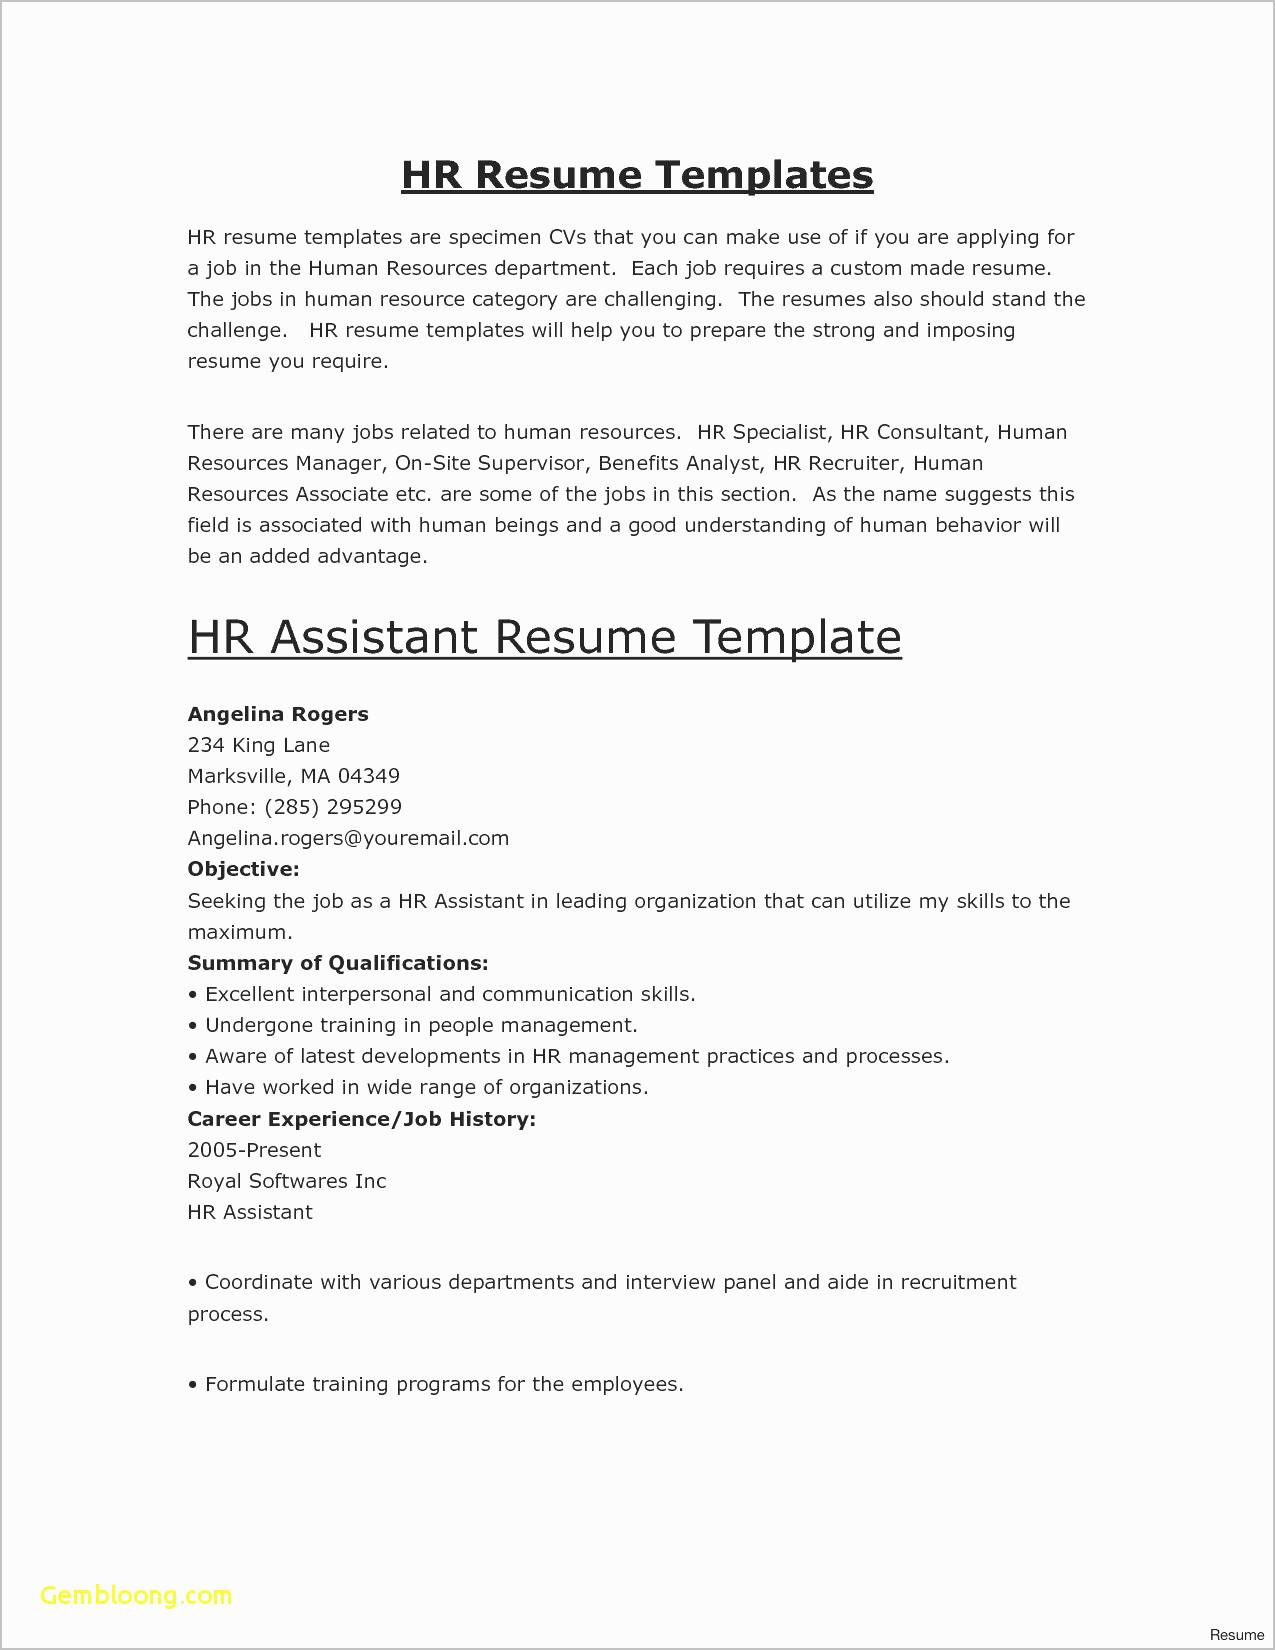 Dental assistant Resume Examples - 50 Best Dental assistant Resume Examples